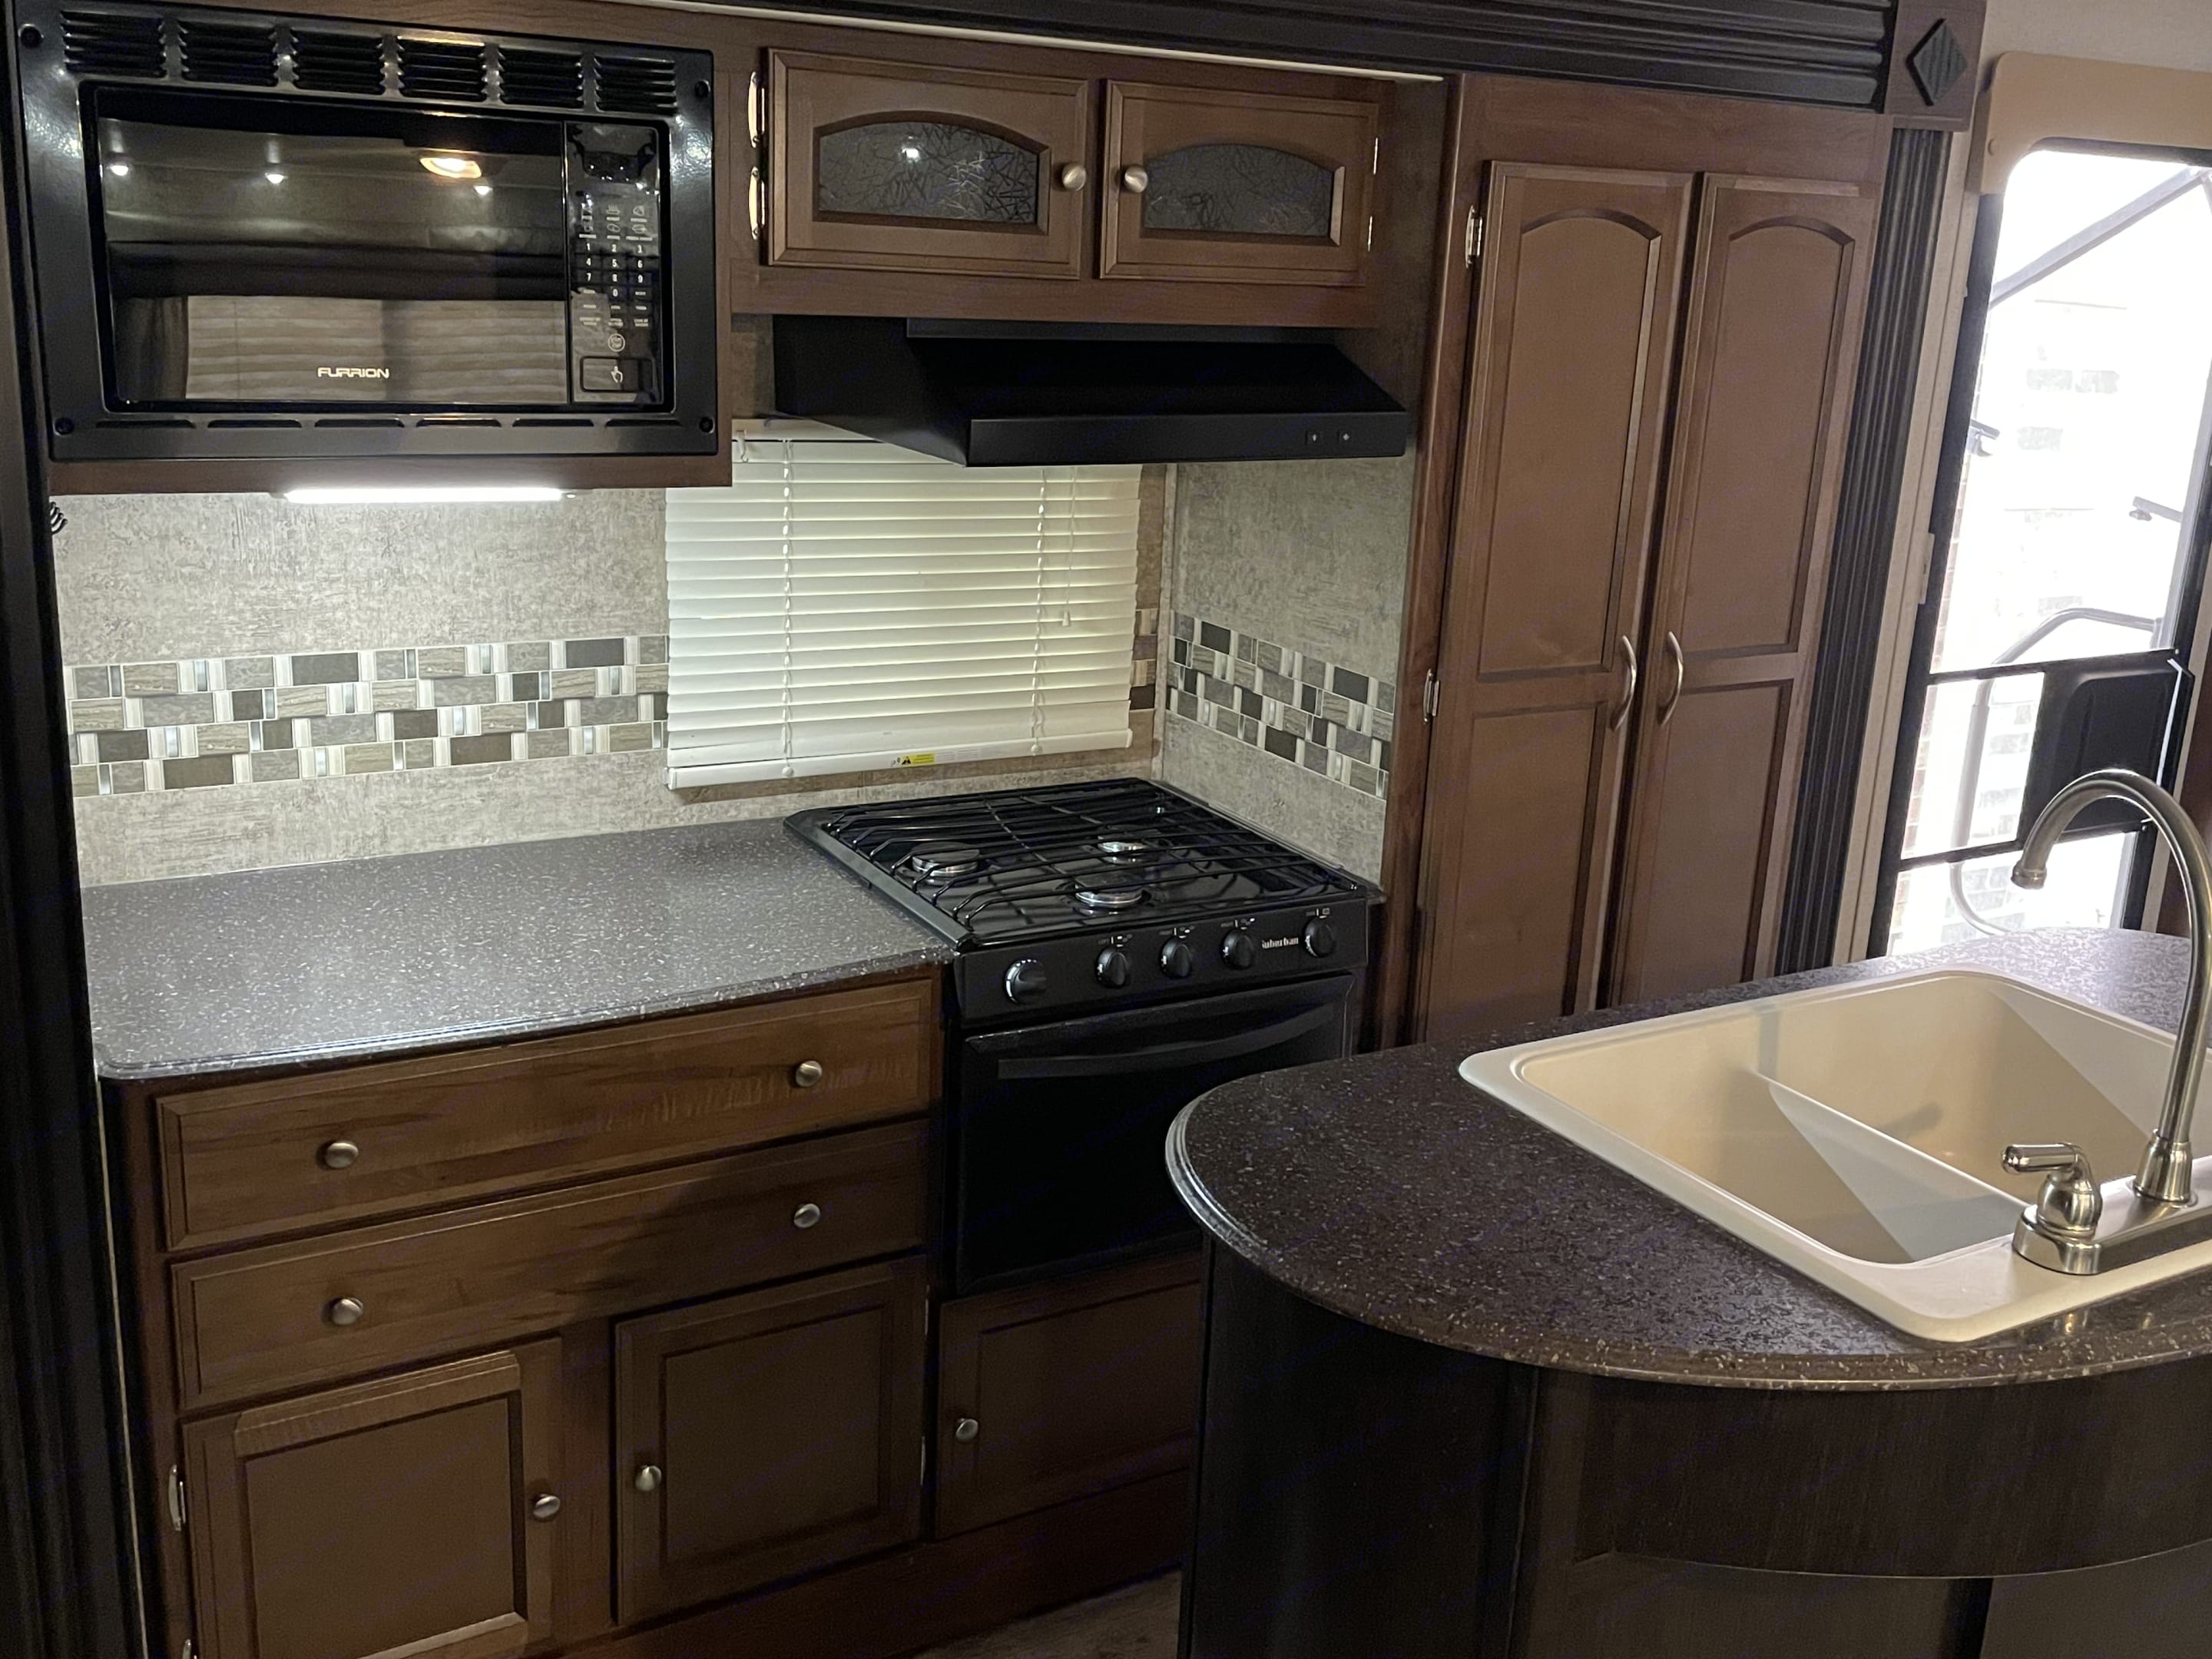 With the 3–burner stove, oven, microwave, and a full compliment of utensils you can cook almost anything worth taking camping, that's not grilled. . Coachmen Freedom Express 2017